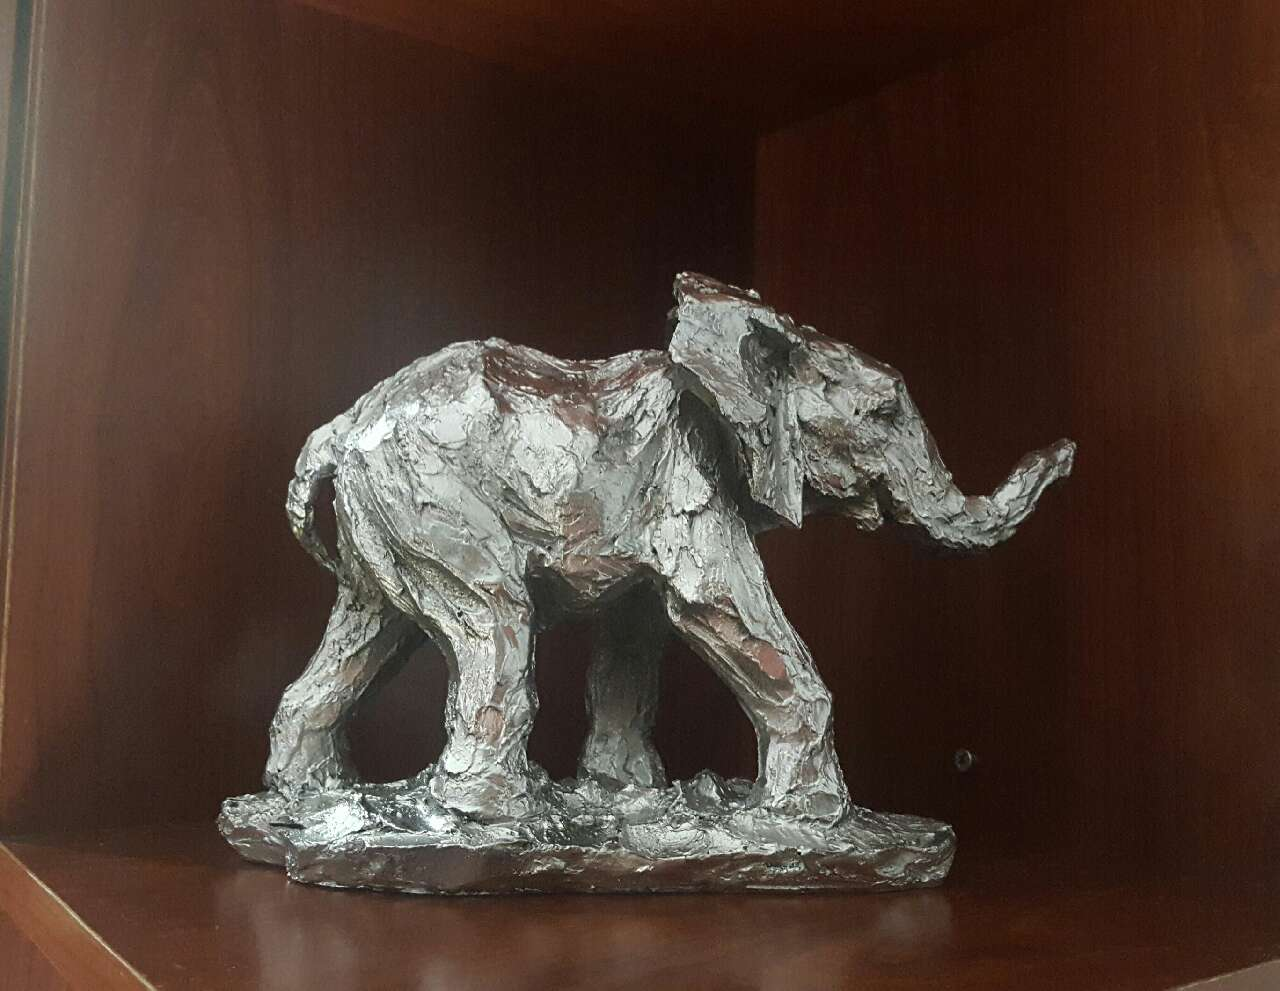 Letgo Silver Elephant Home Decor In Hialeah Fl: silver elephant home decor